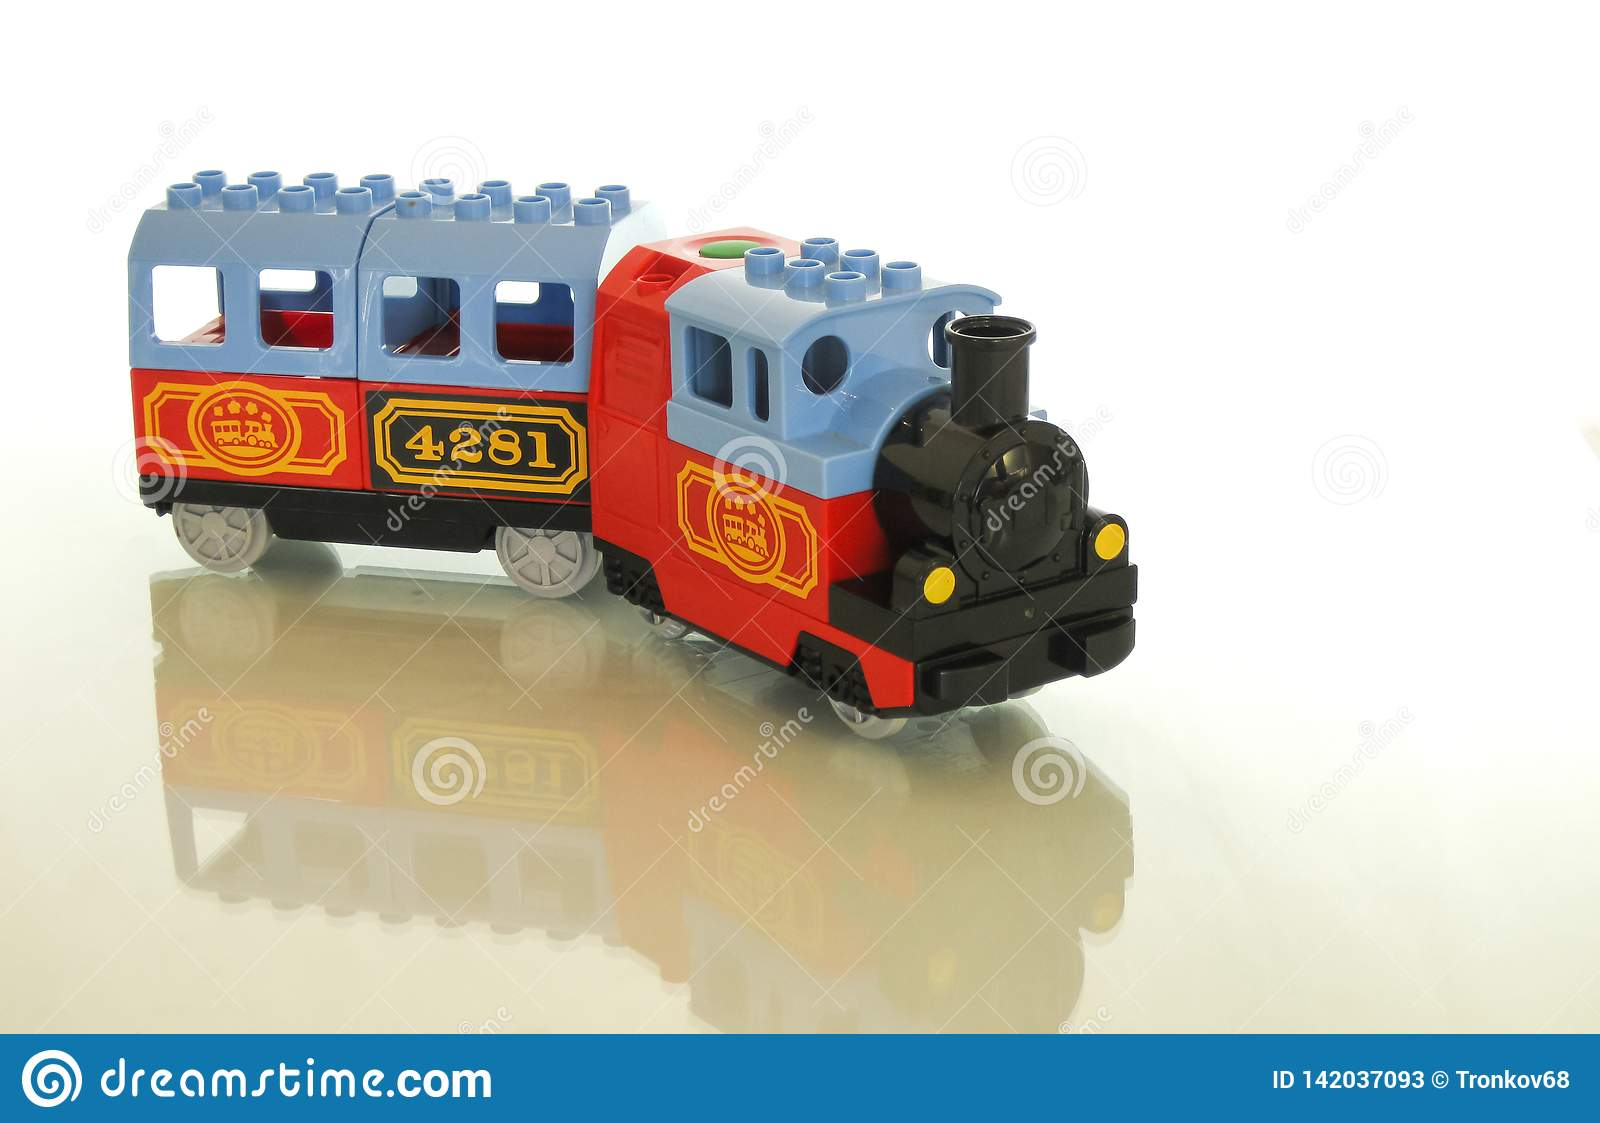 Designer and train - a great combination for a toy.